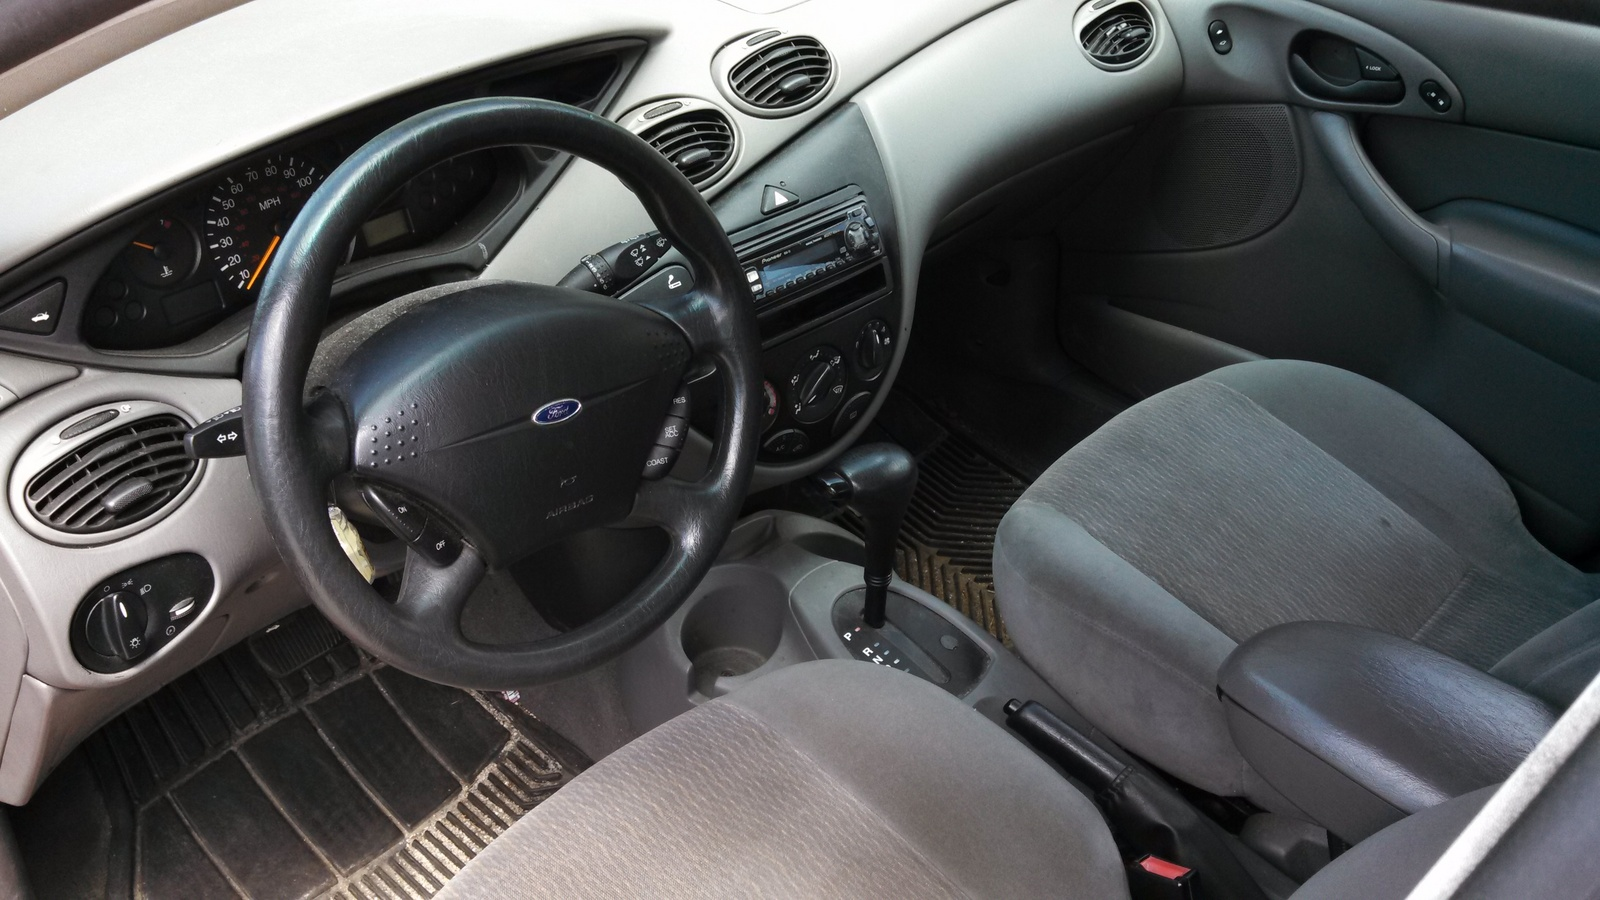 2000 ford focus wagon accessories for Ford focus interior accessories